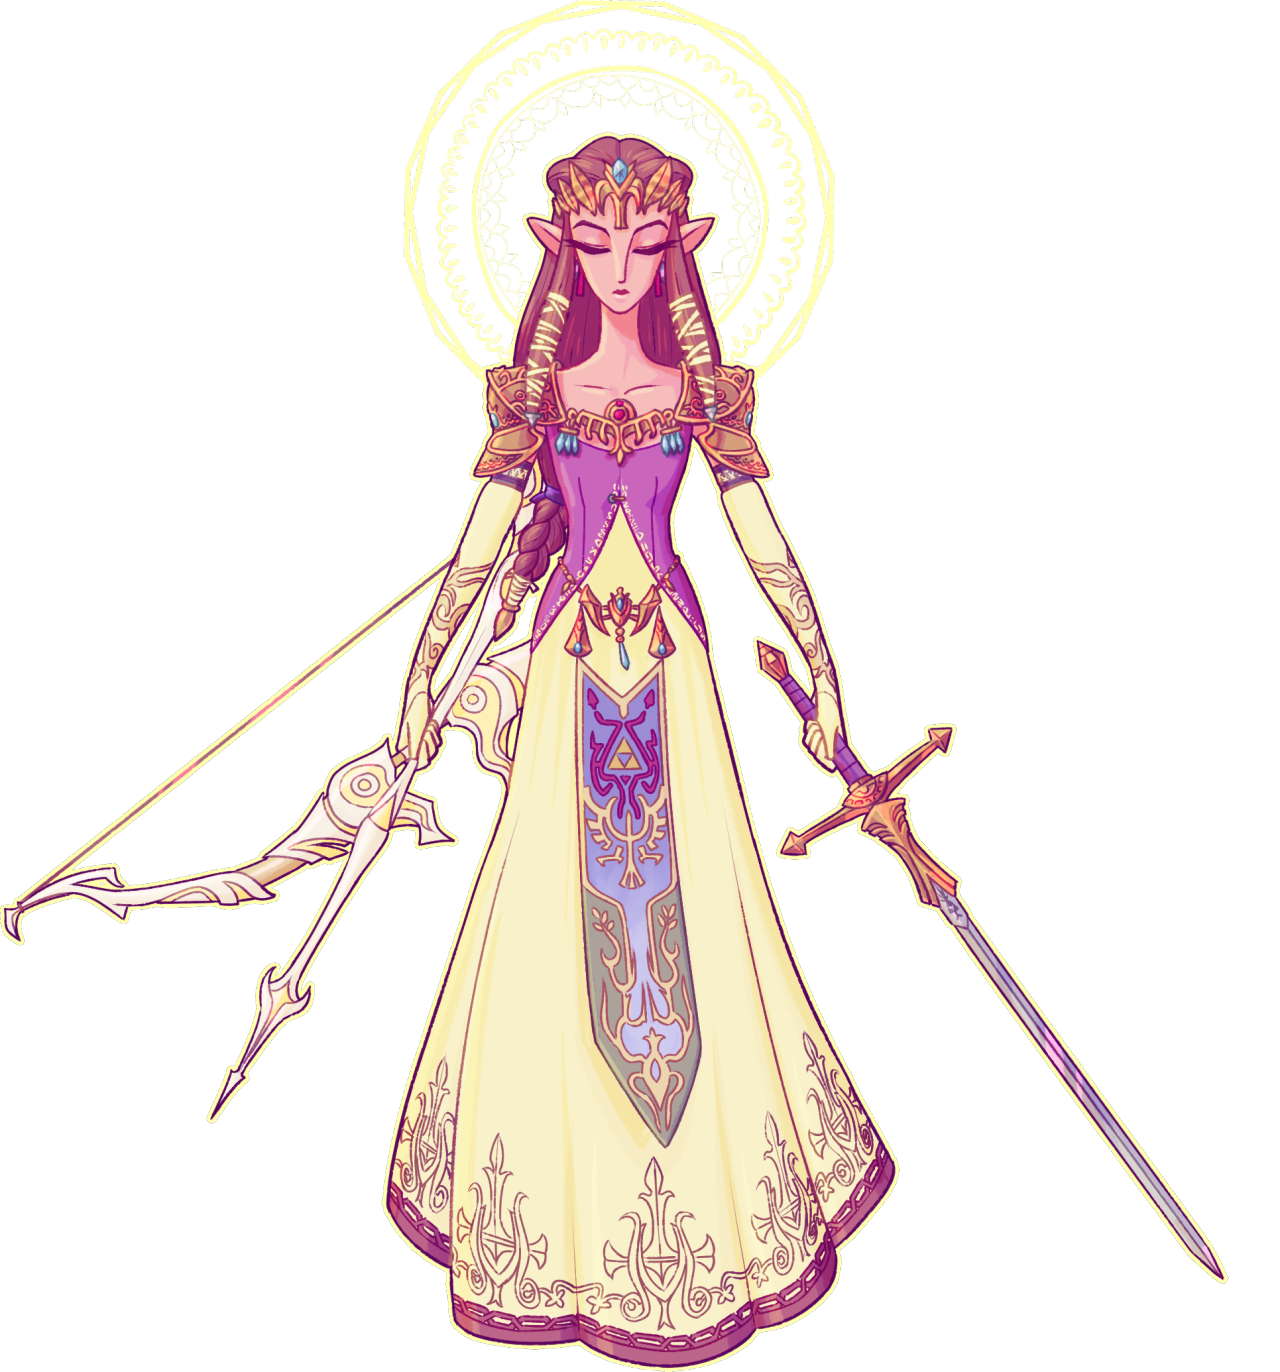 Transparent zelda. Princess of wisdom pinterest